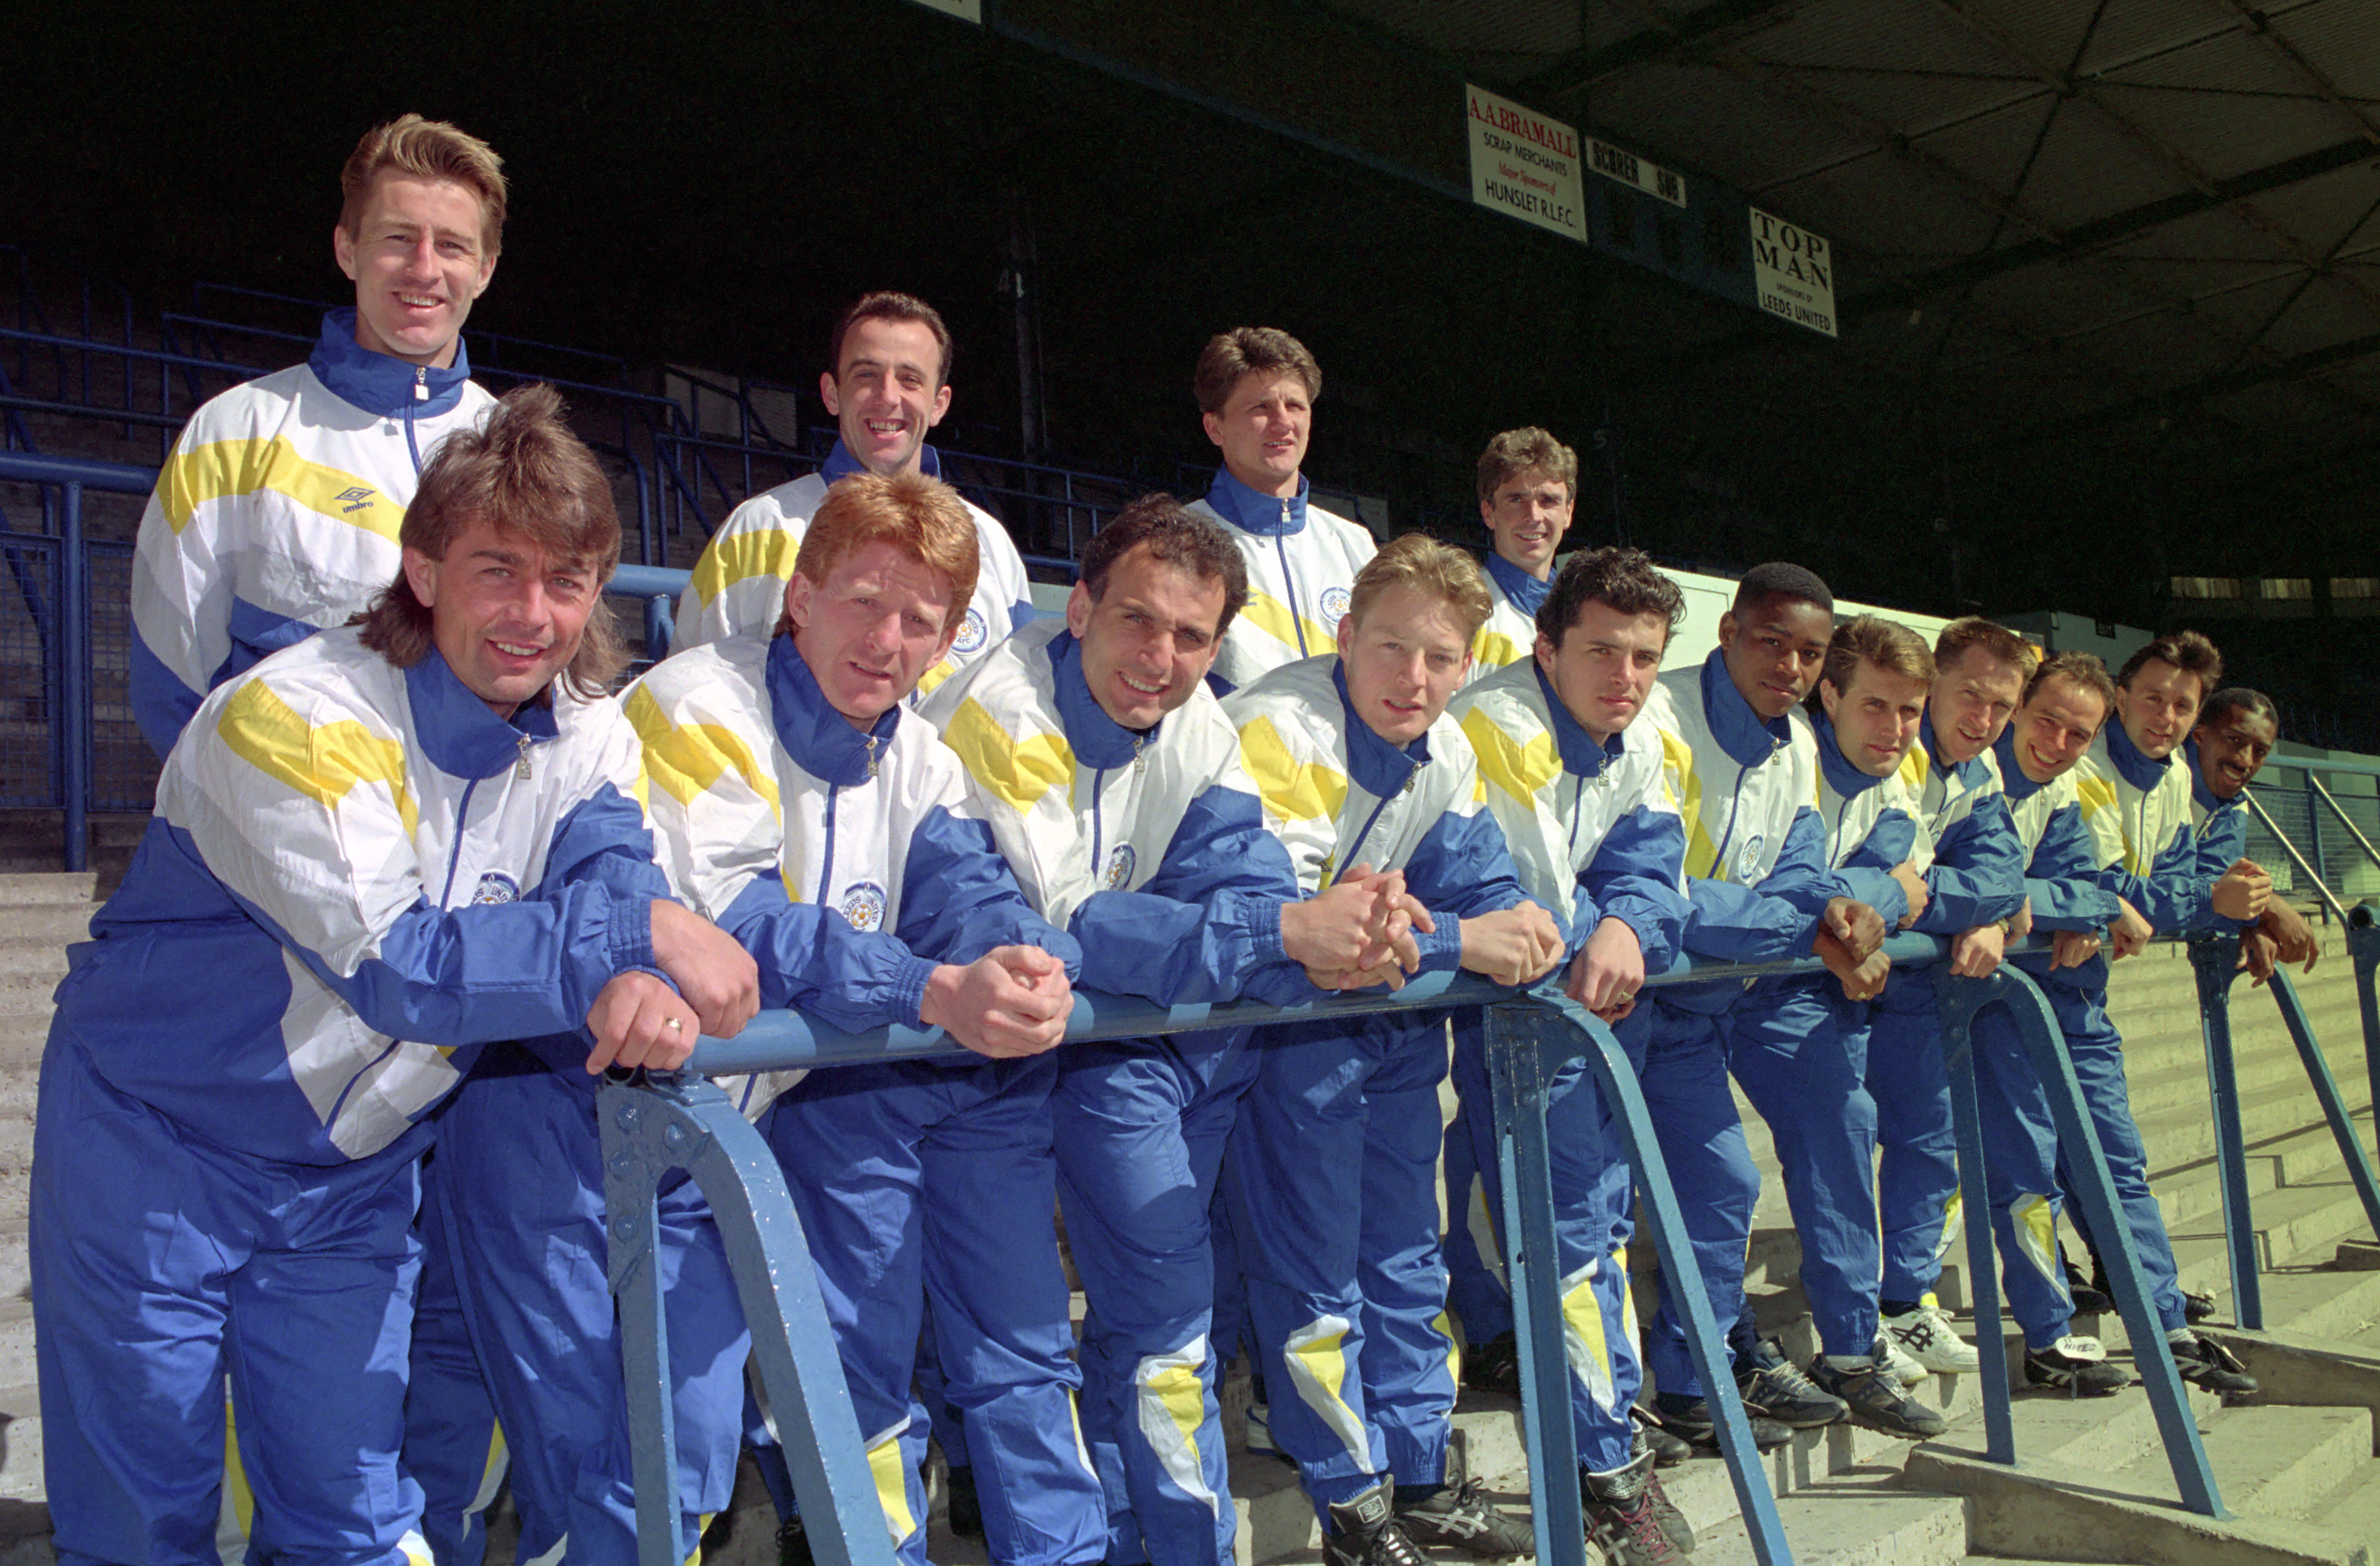 Leeds United team in 1990 wearing tracksuits in the blue and yellow colourway